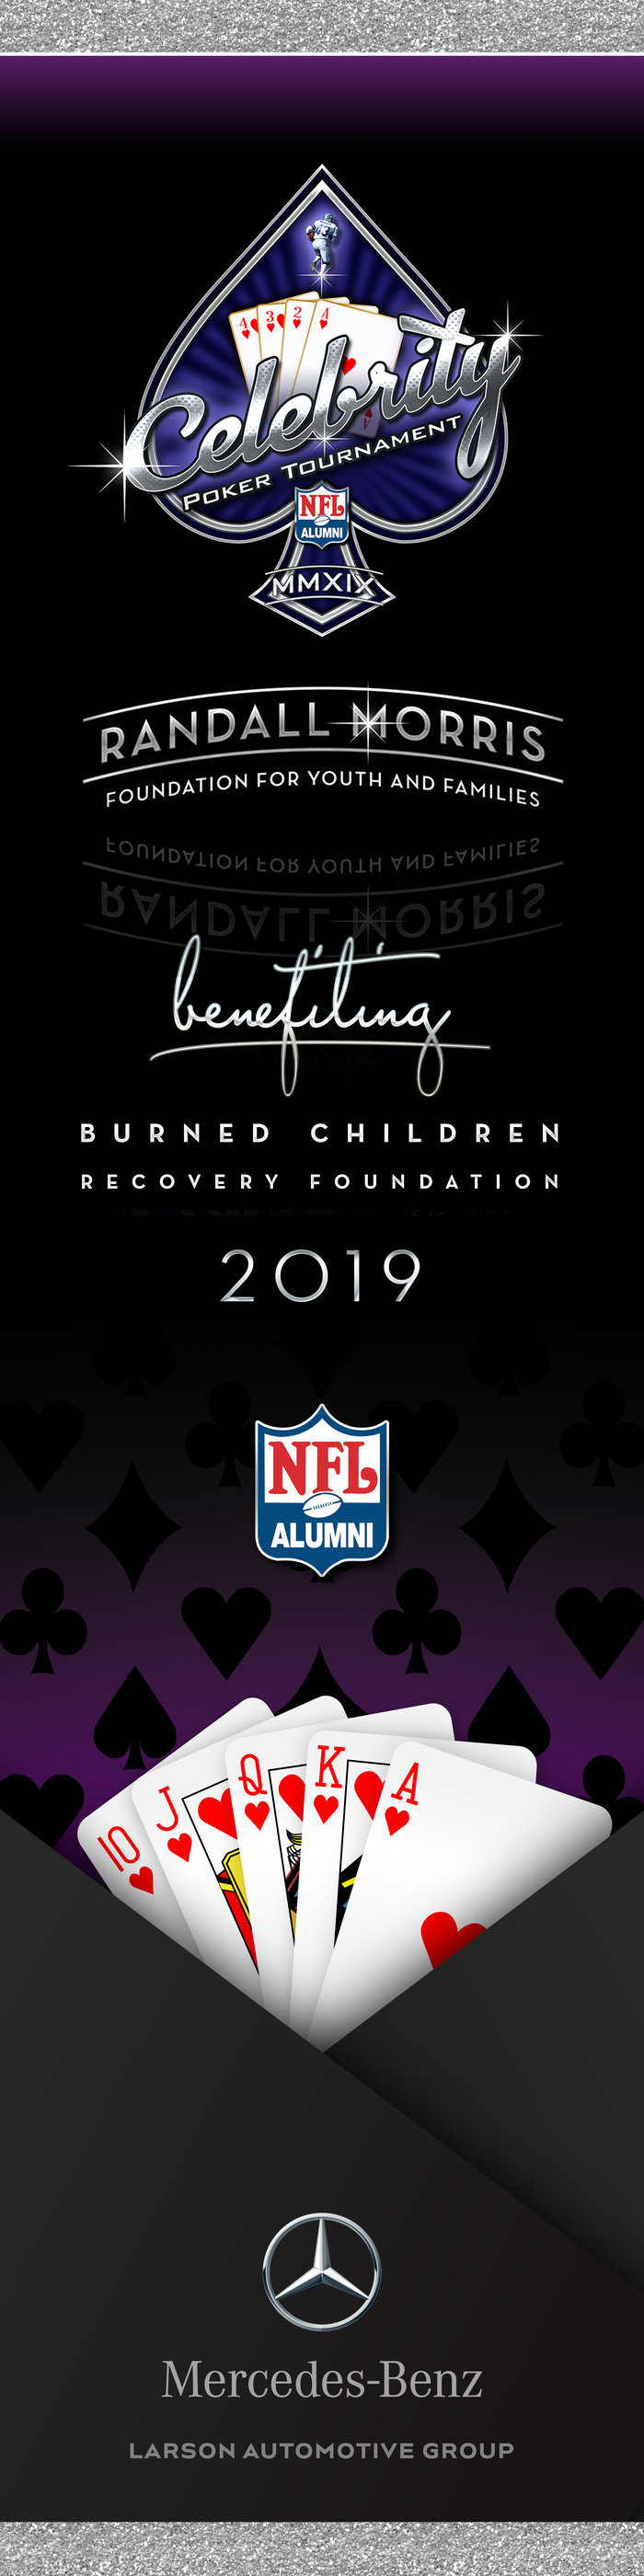 Burned Children Recovery Foundation Celebrity Poker Tournament banners 2